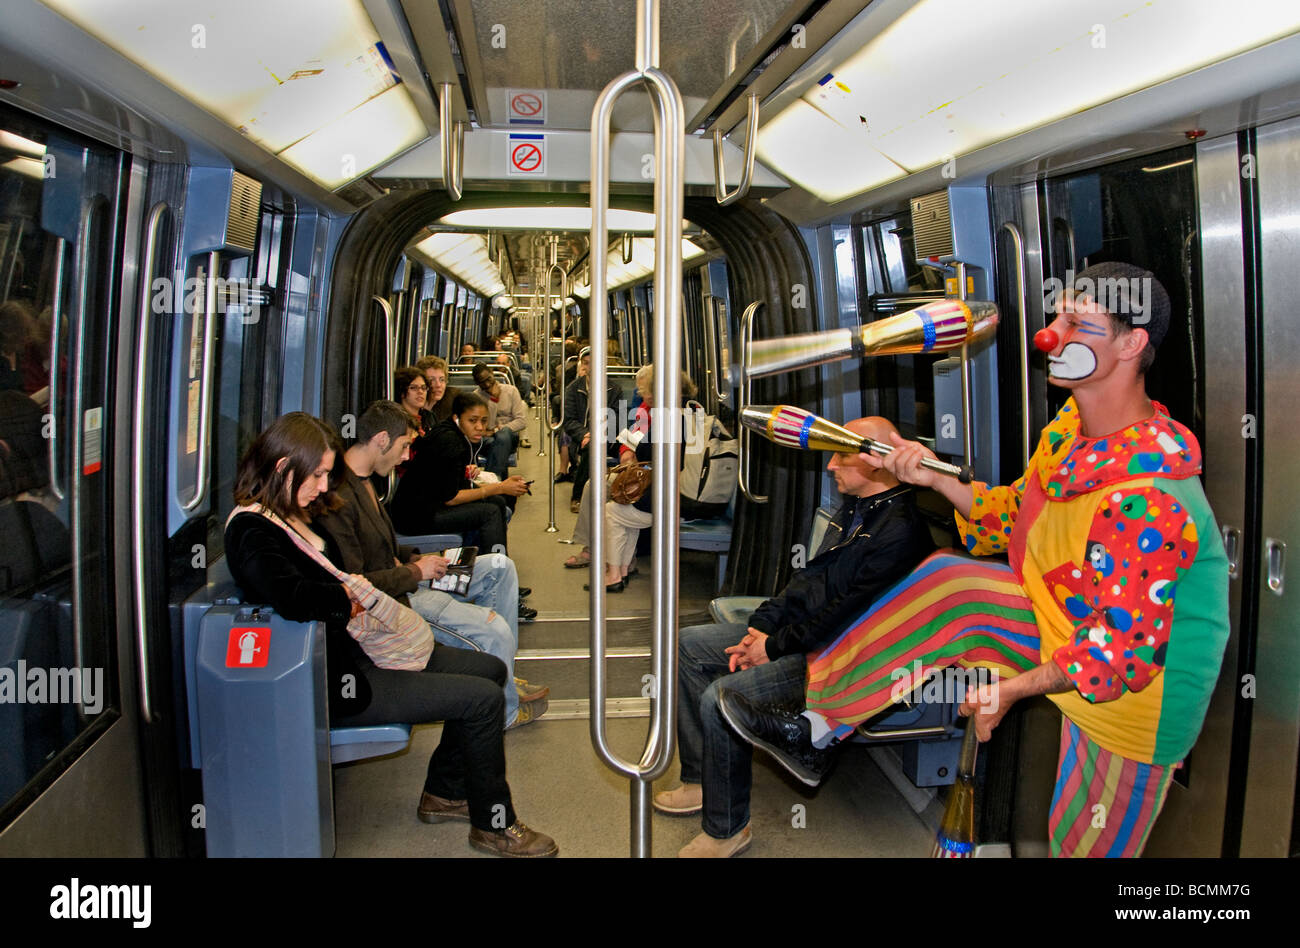 Paris France French Metro Clown Begging Beggar - Stock Image